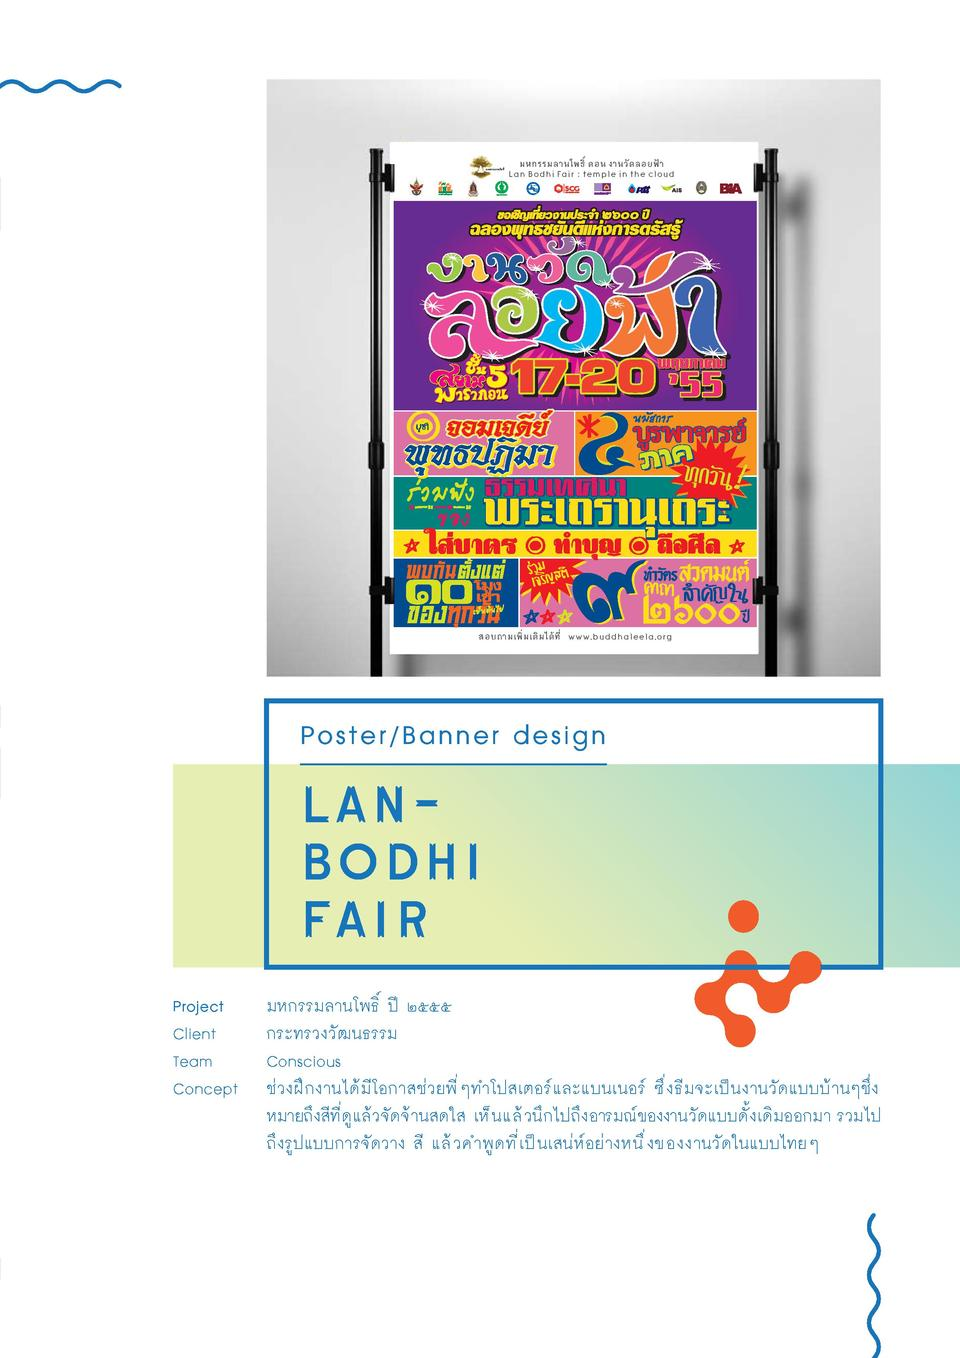 Poster Banner design  Lanbodhi fair Project Client Team Concept                                                           ...